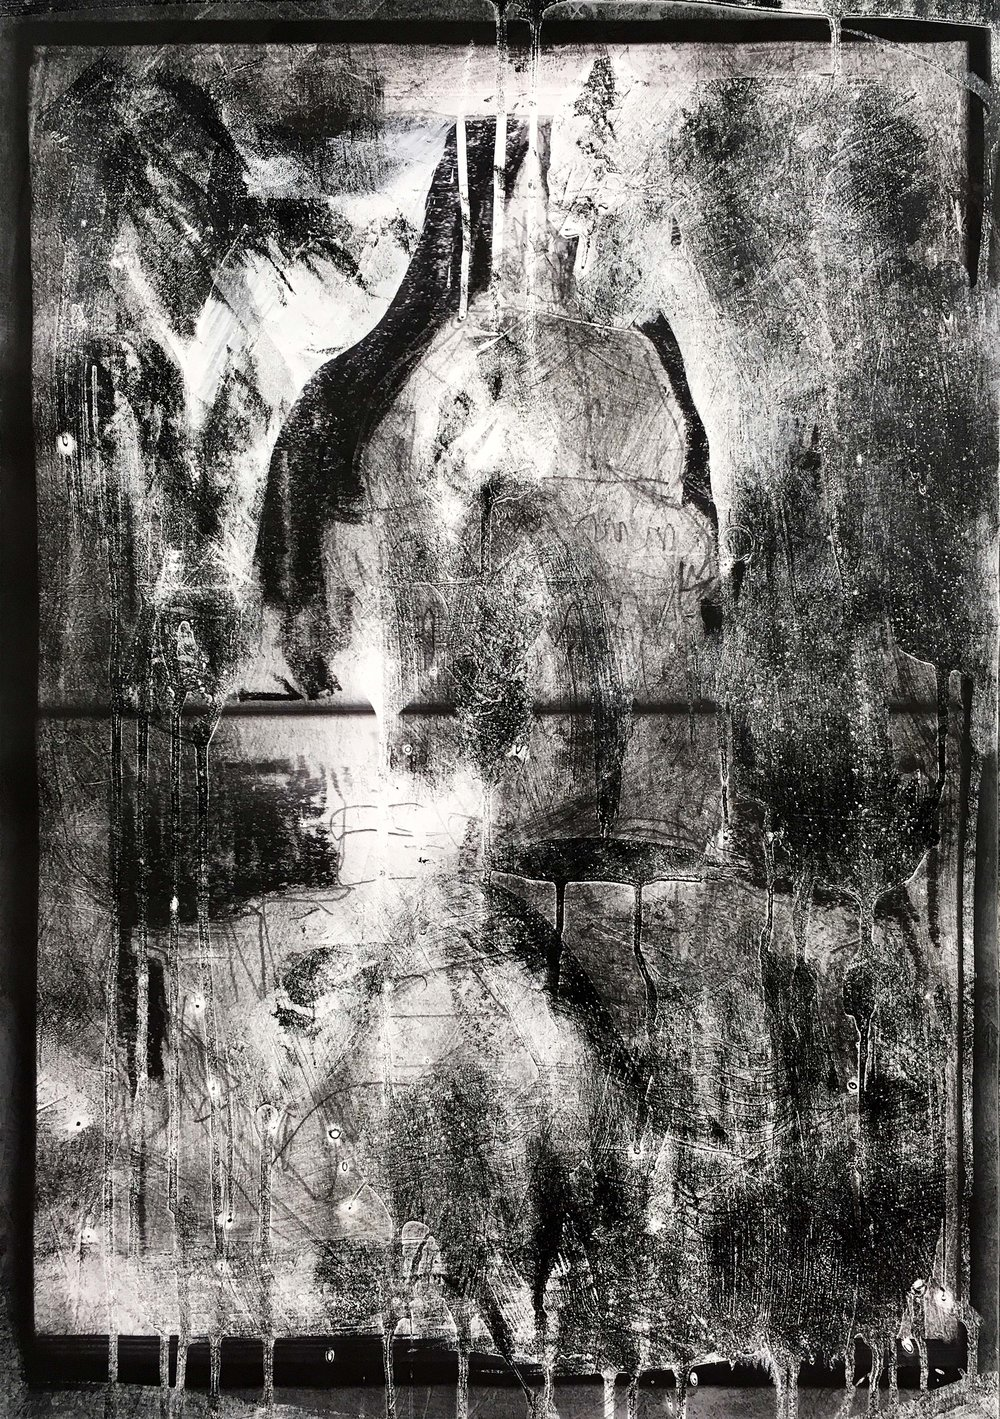 Sankt-Michael-Kirche II, Arthur Laidlaw, Laser toner, acrylic primer, etching ink, and pencil on paper, 2018